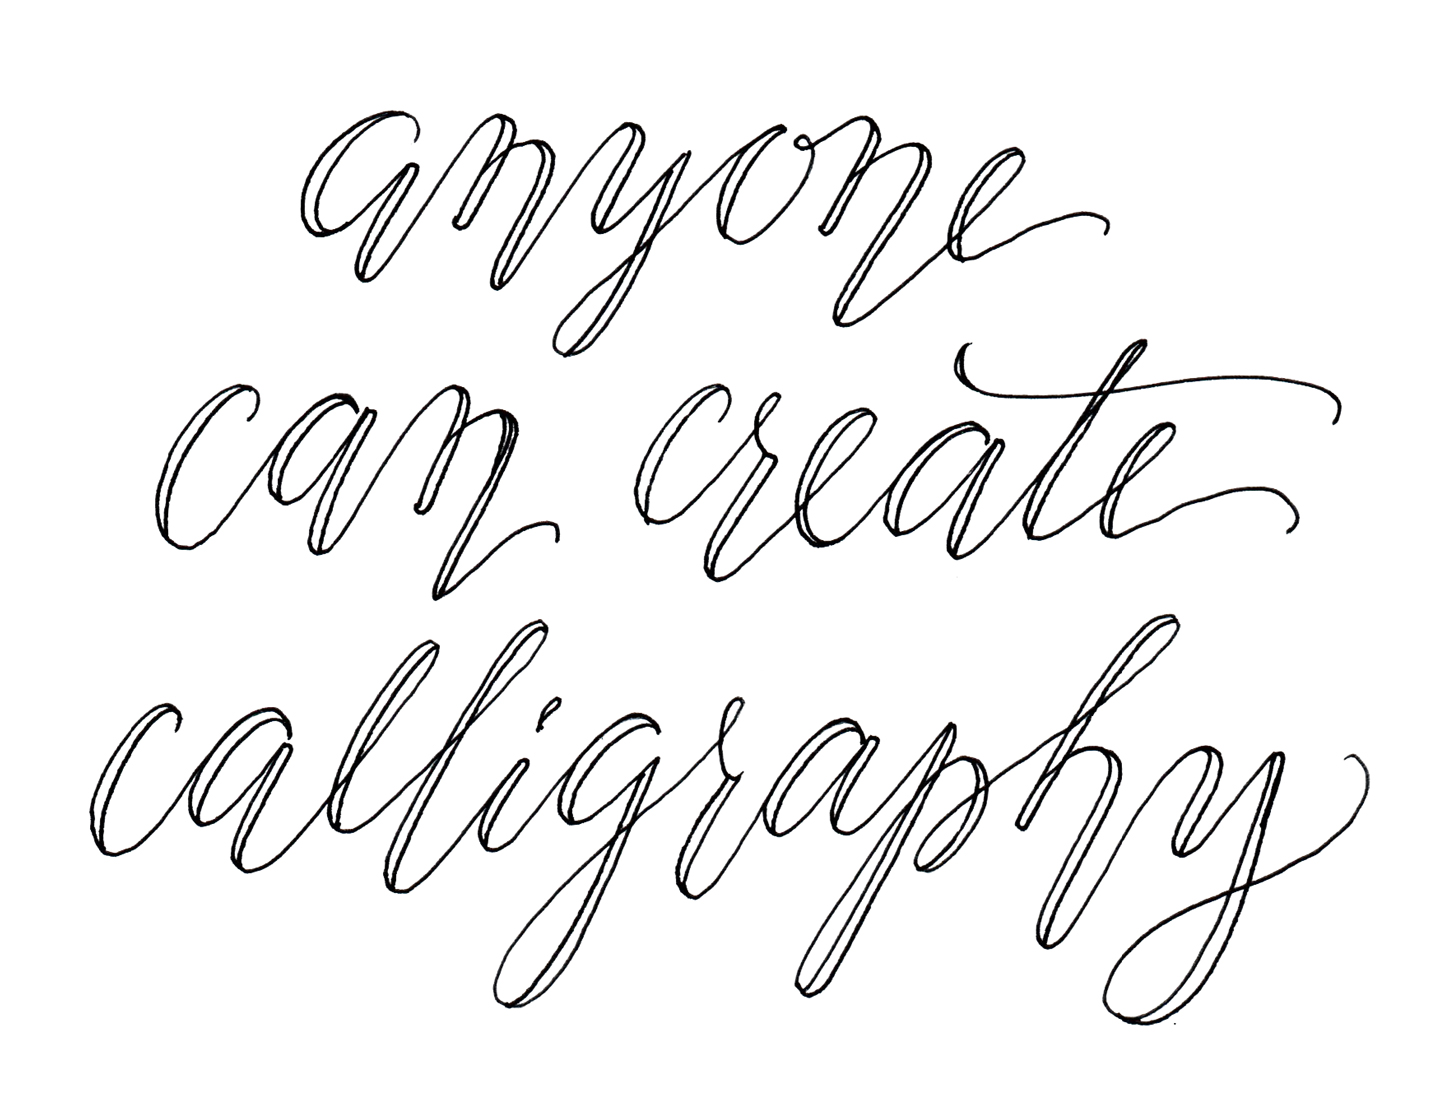 Cheating Calligraphy Tutorial